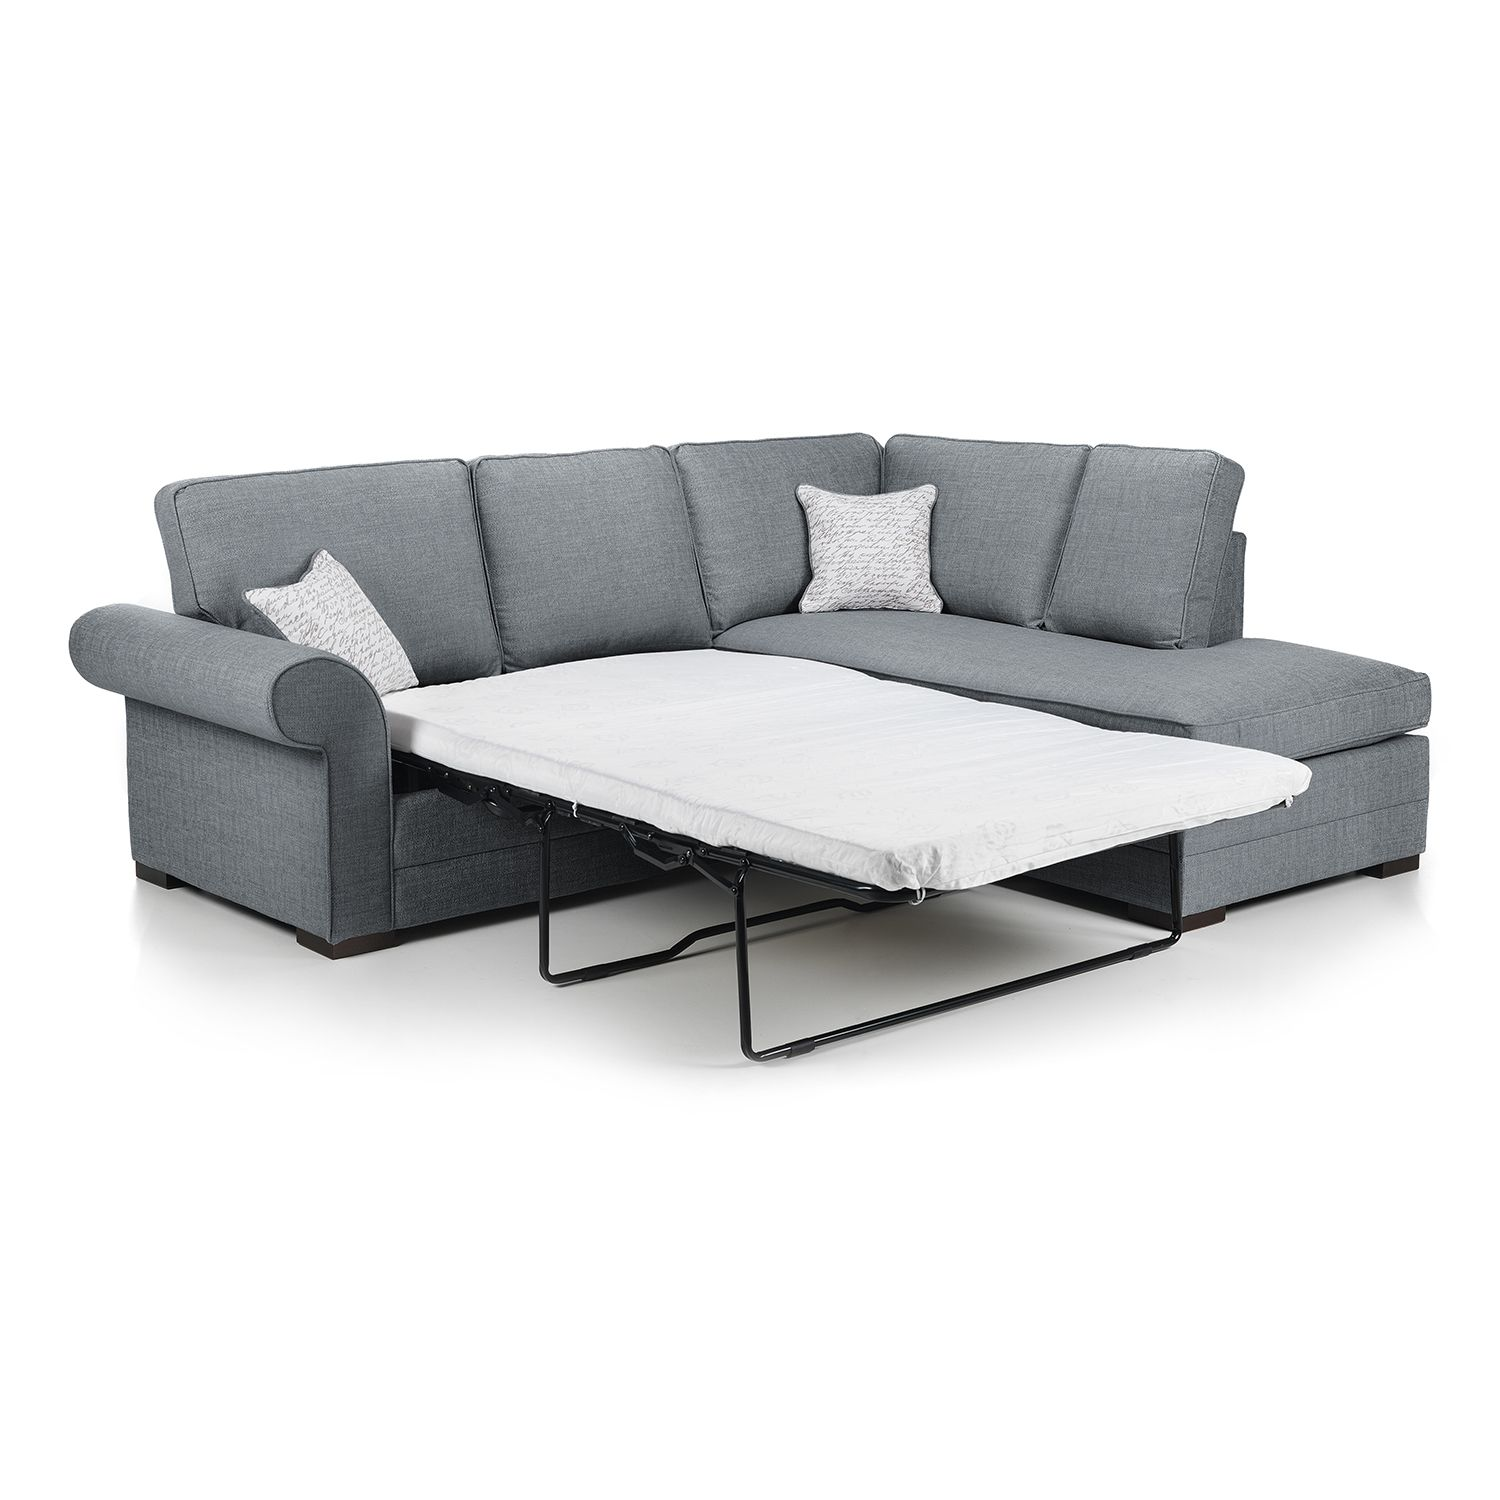 Logan Fabric Corner Sofabed Next Day Delivery Logan Fabric Corner Sofabed With Images Corner Sofa Bed Elegant Sofa Sofa Bed